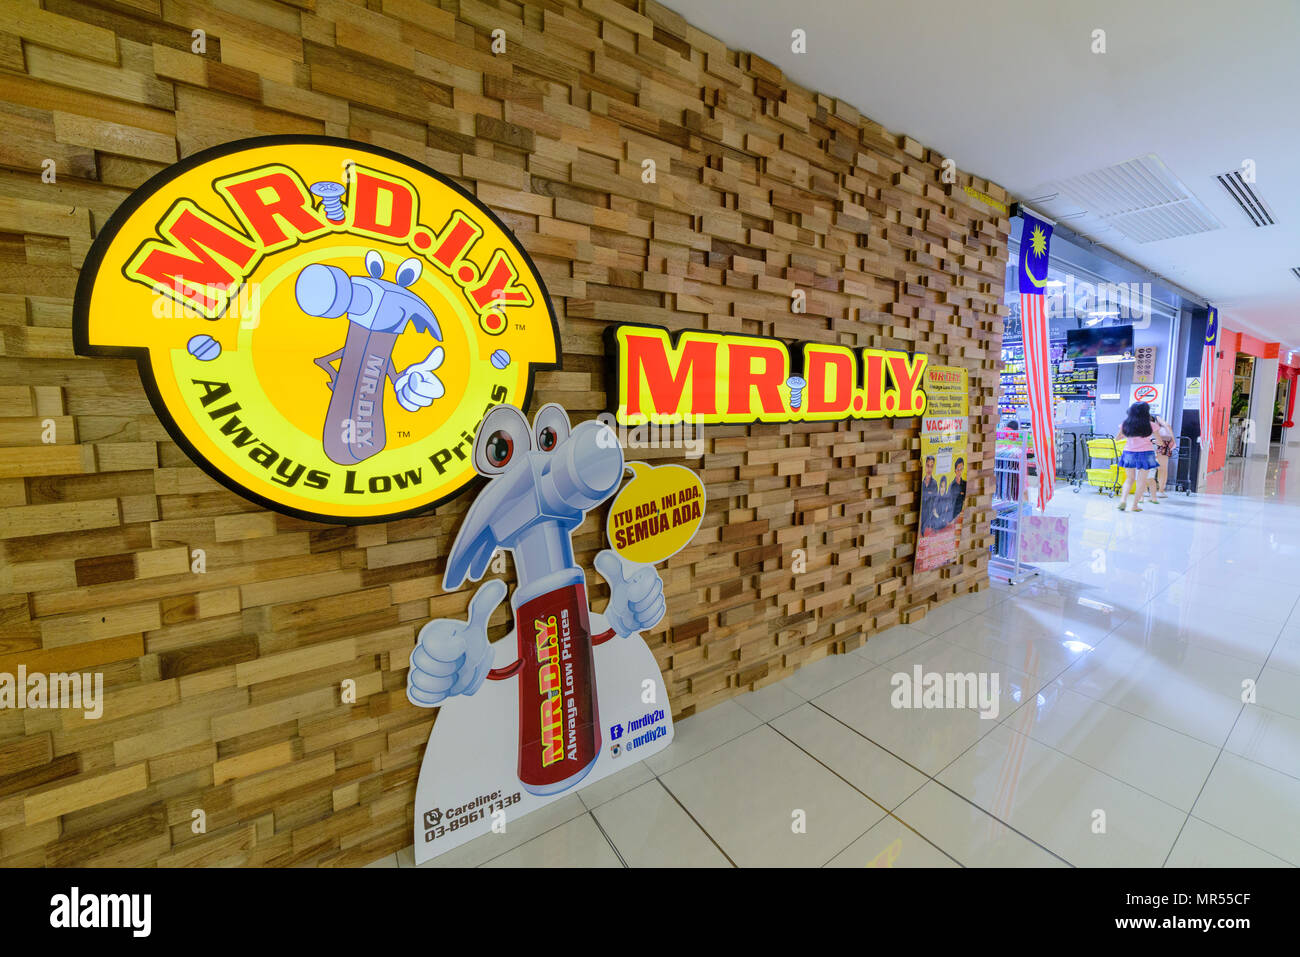 Penang, Malaysia - Nov 12, 2017 : MR. D.I.Y. shop. MR. D.I.Y. is the largest home improvement retailer in Malaysia. The company retails a variety of h - Stock Image